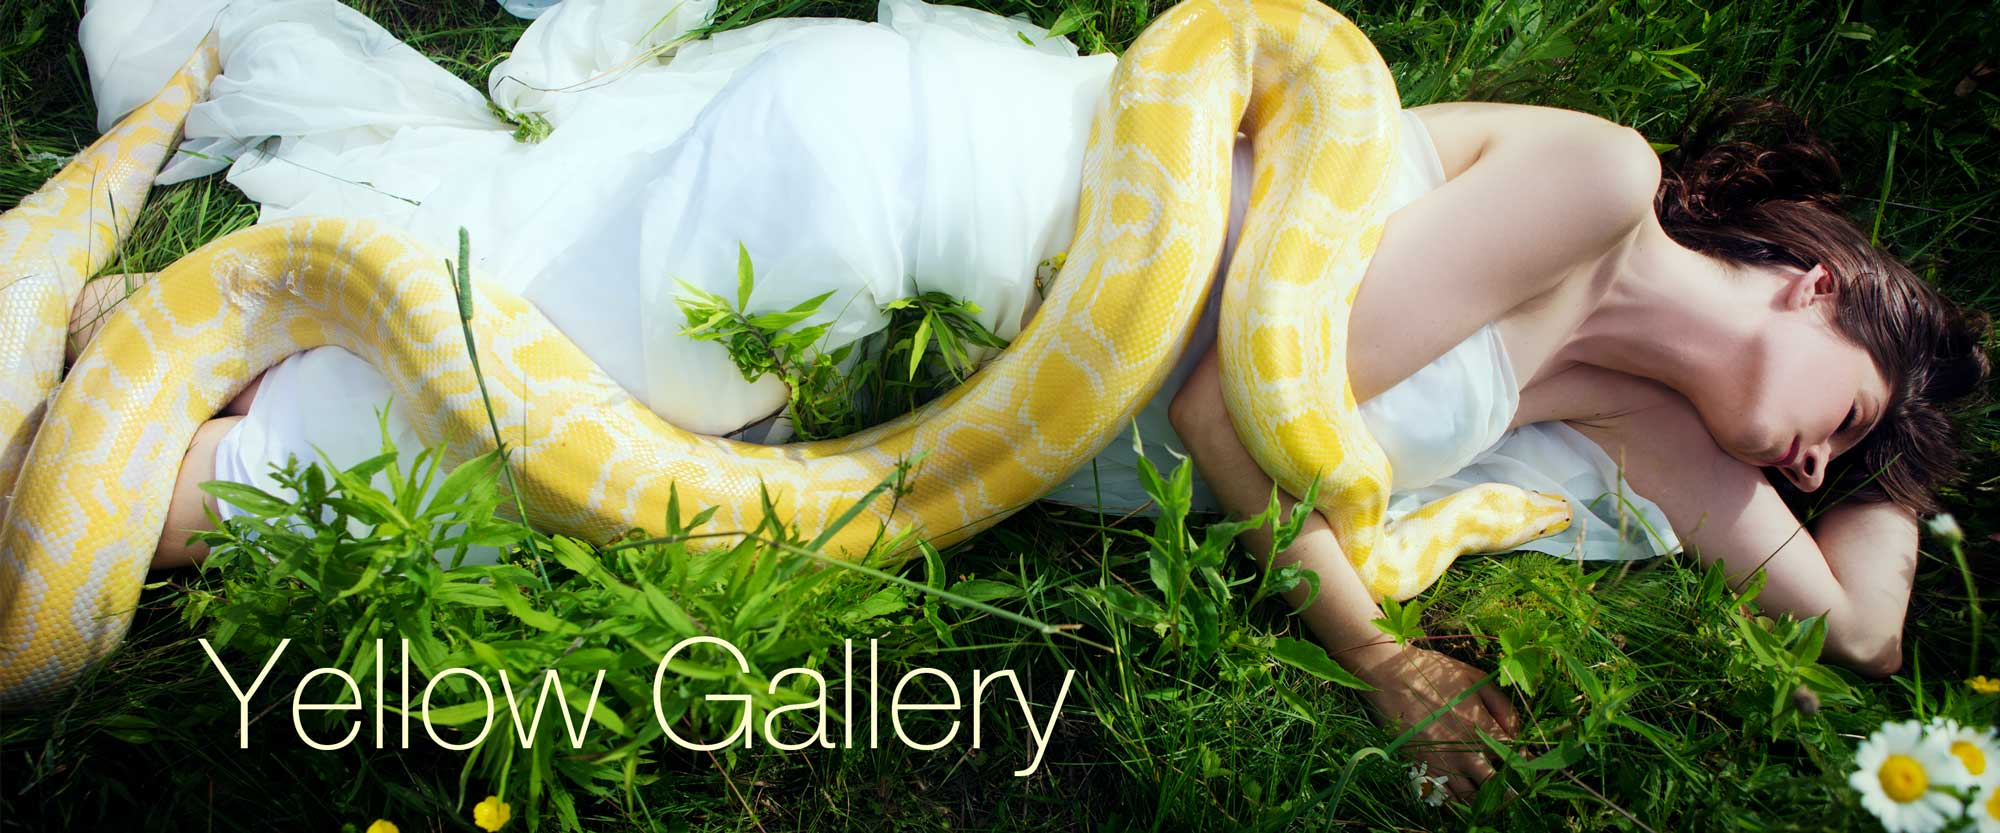 Laüra Hollick's Yellow Gallery